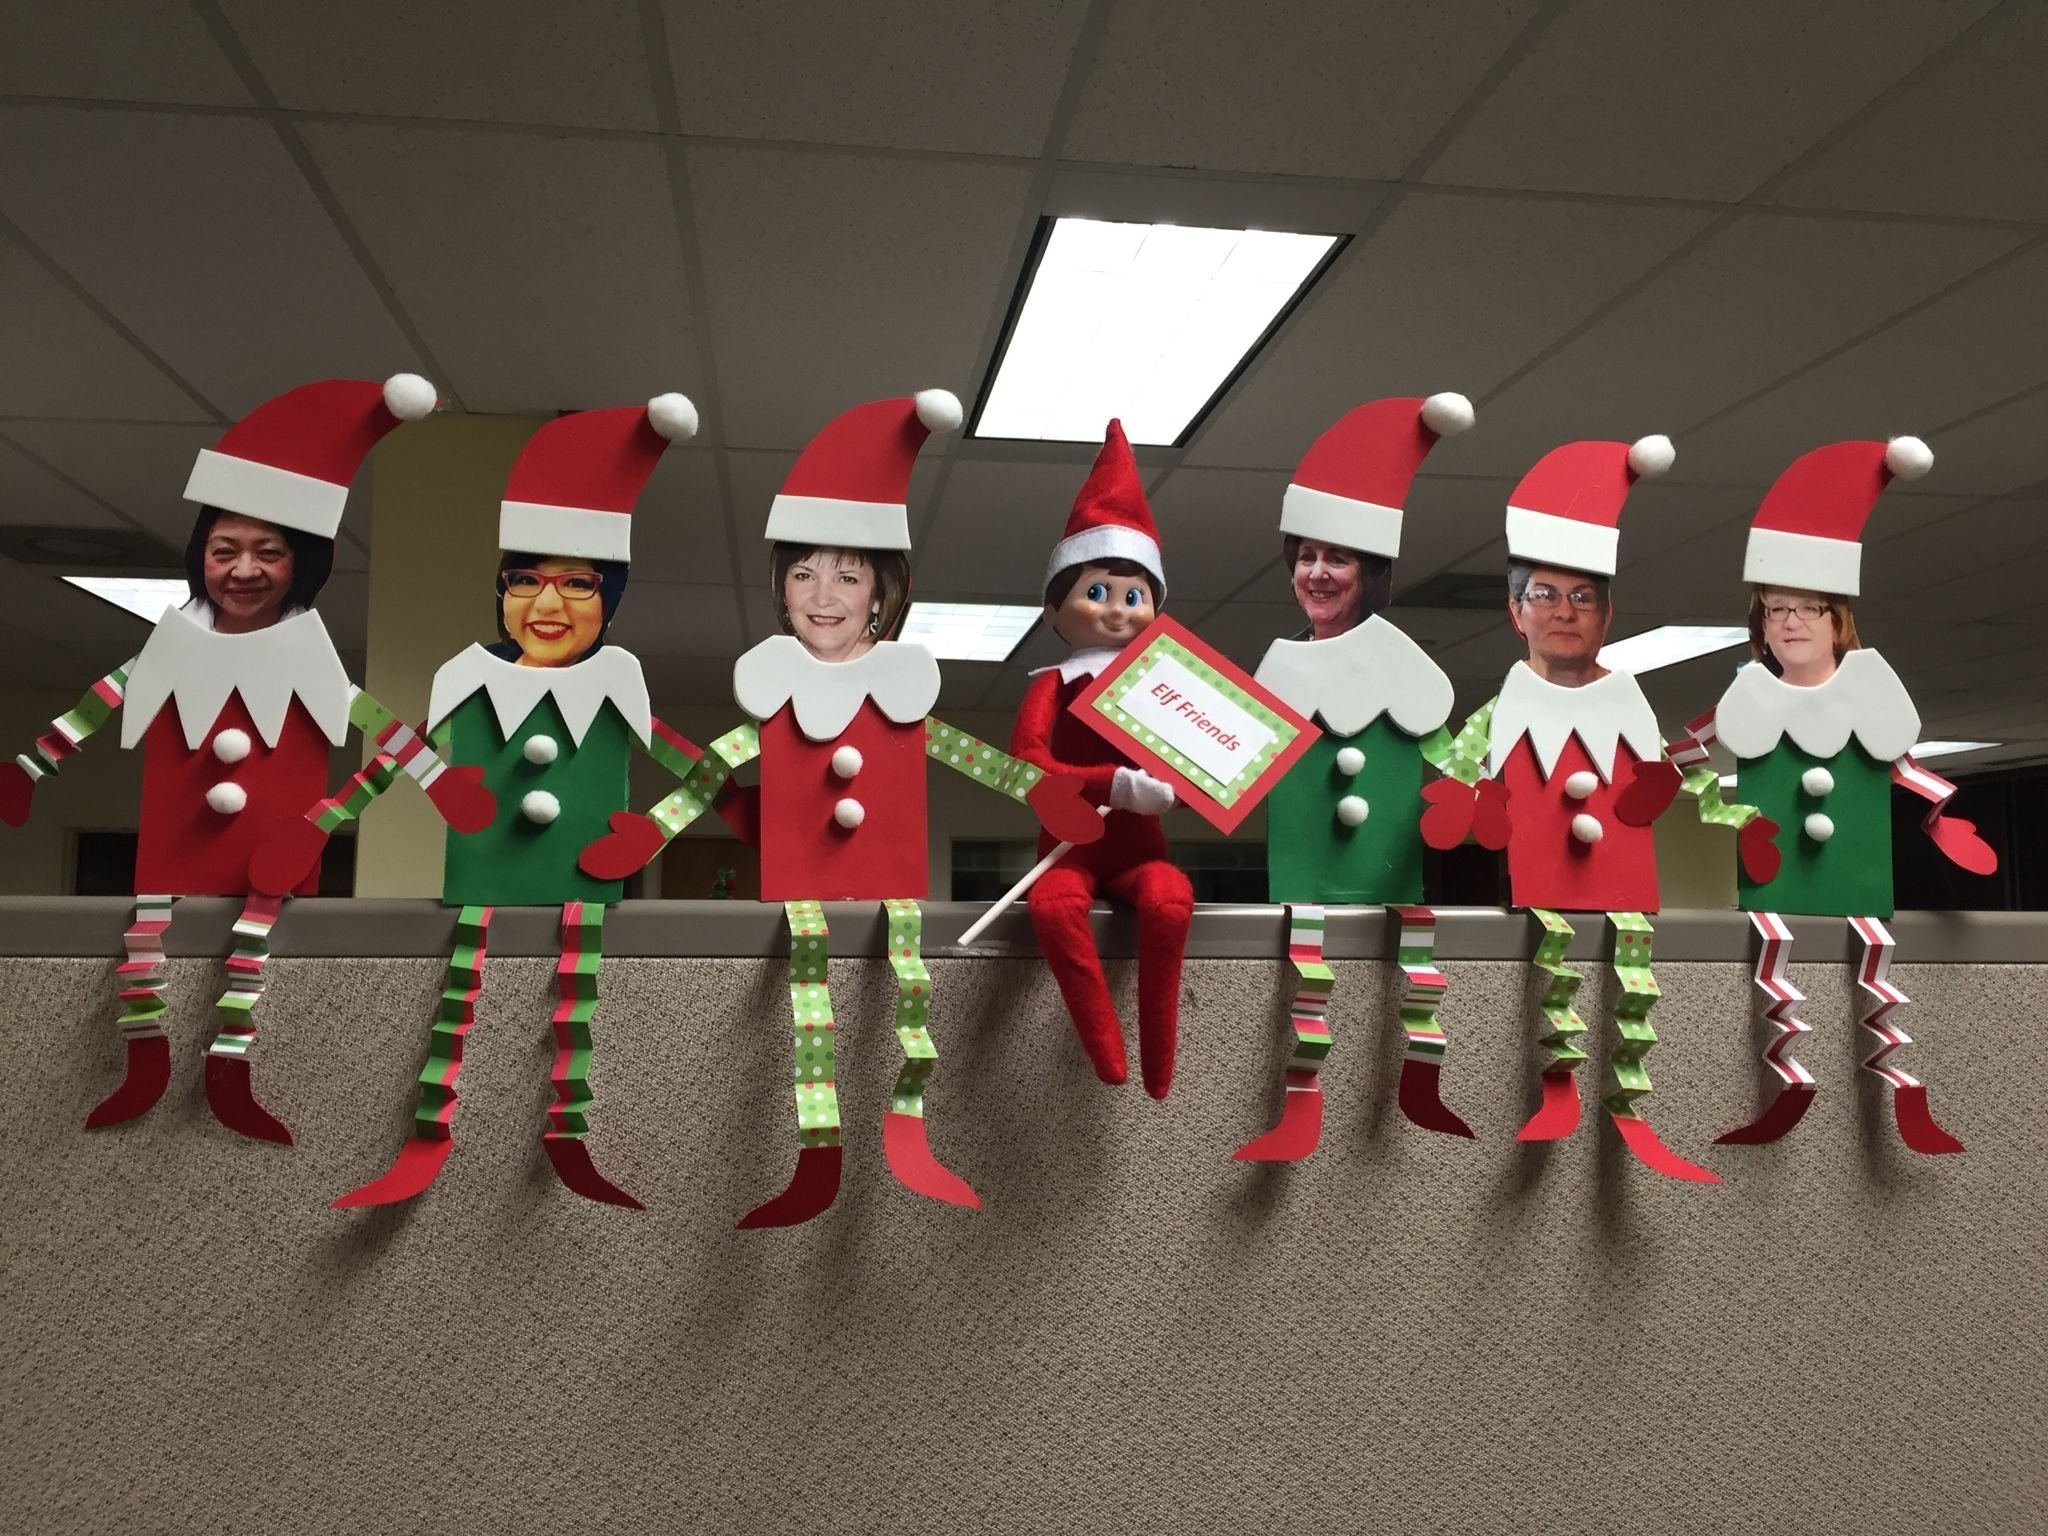 10 Ideal Ideas For Office Christmas Parties elf on the shelf at the office elf friends christmas pinterest 4 2020